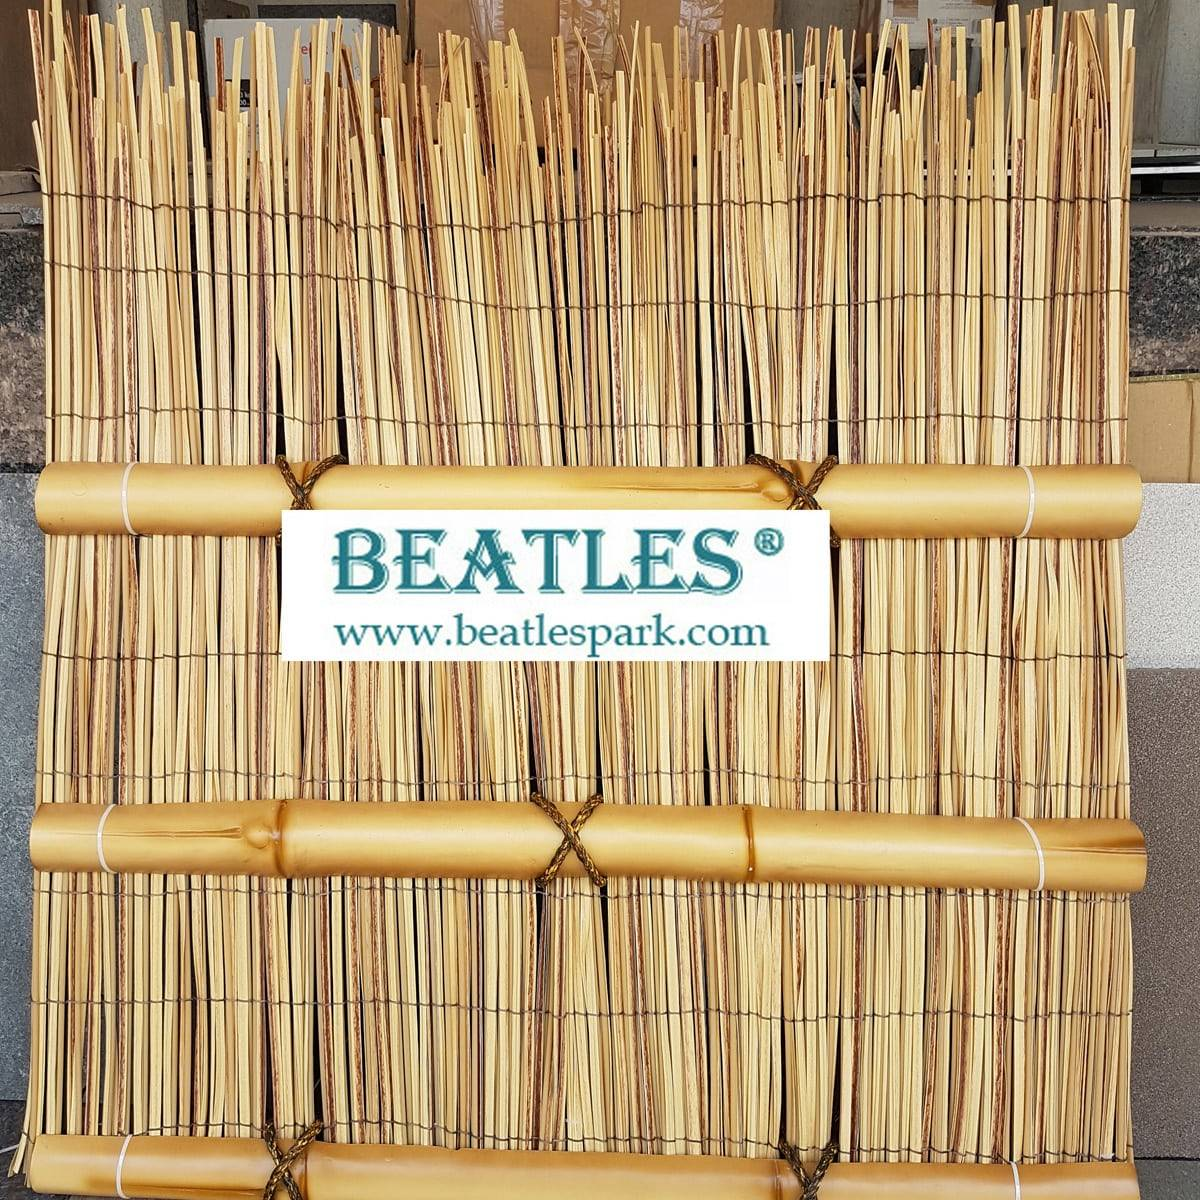 Plastic Privacy Rattan Reed Fence Panels for Screening